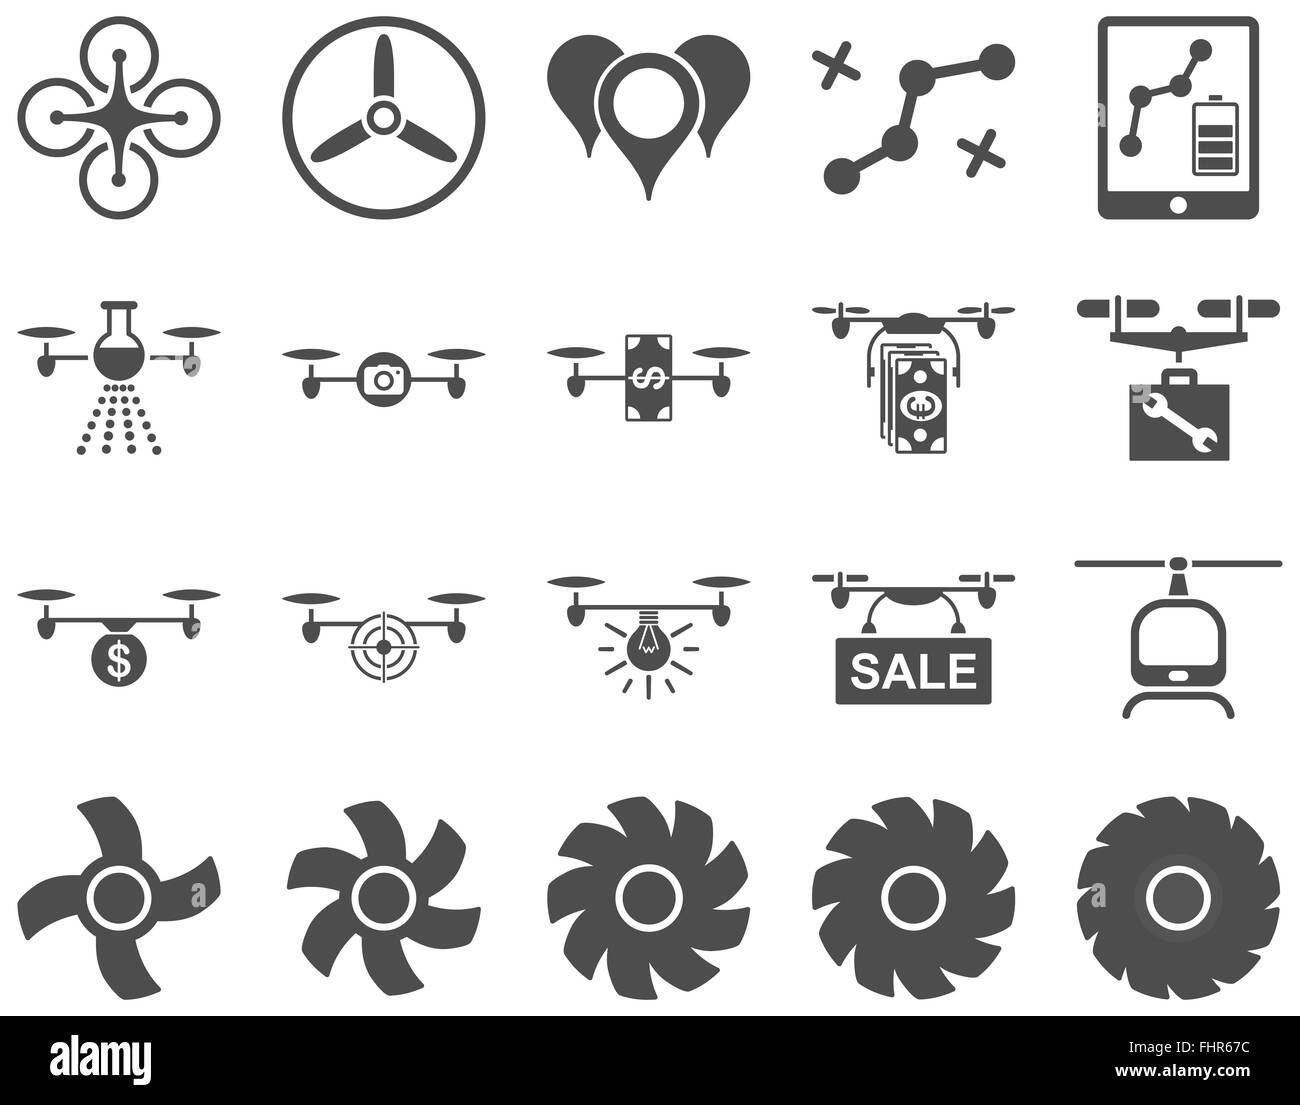 Air drone and quadcopter tool icons - Stock Image